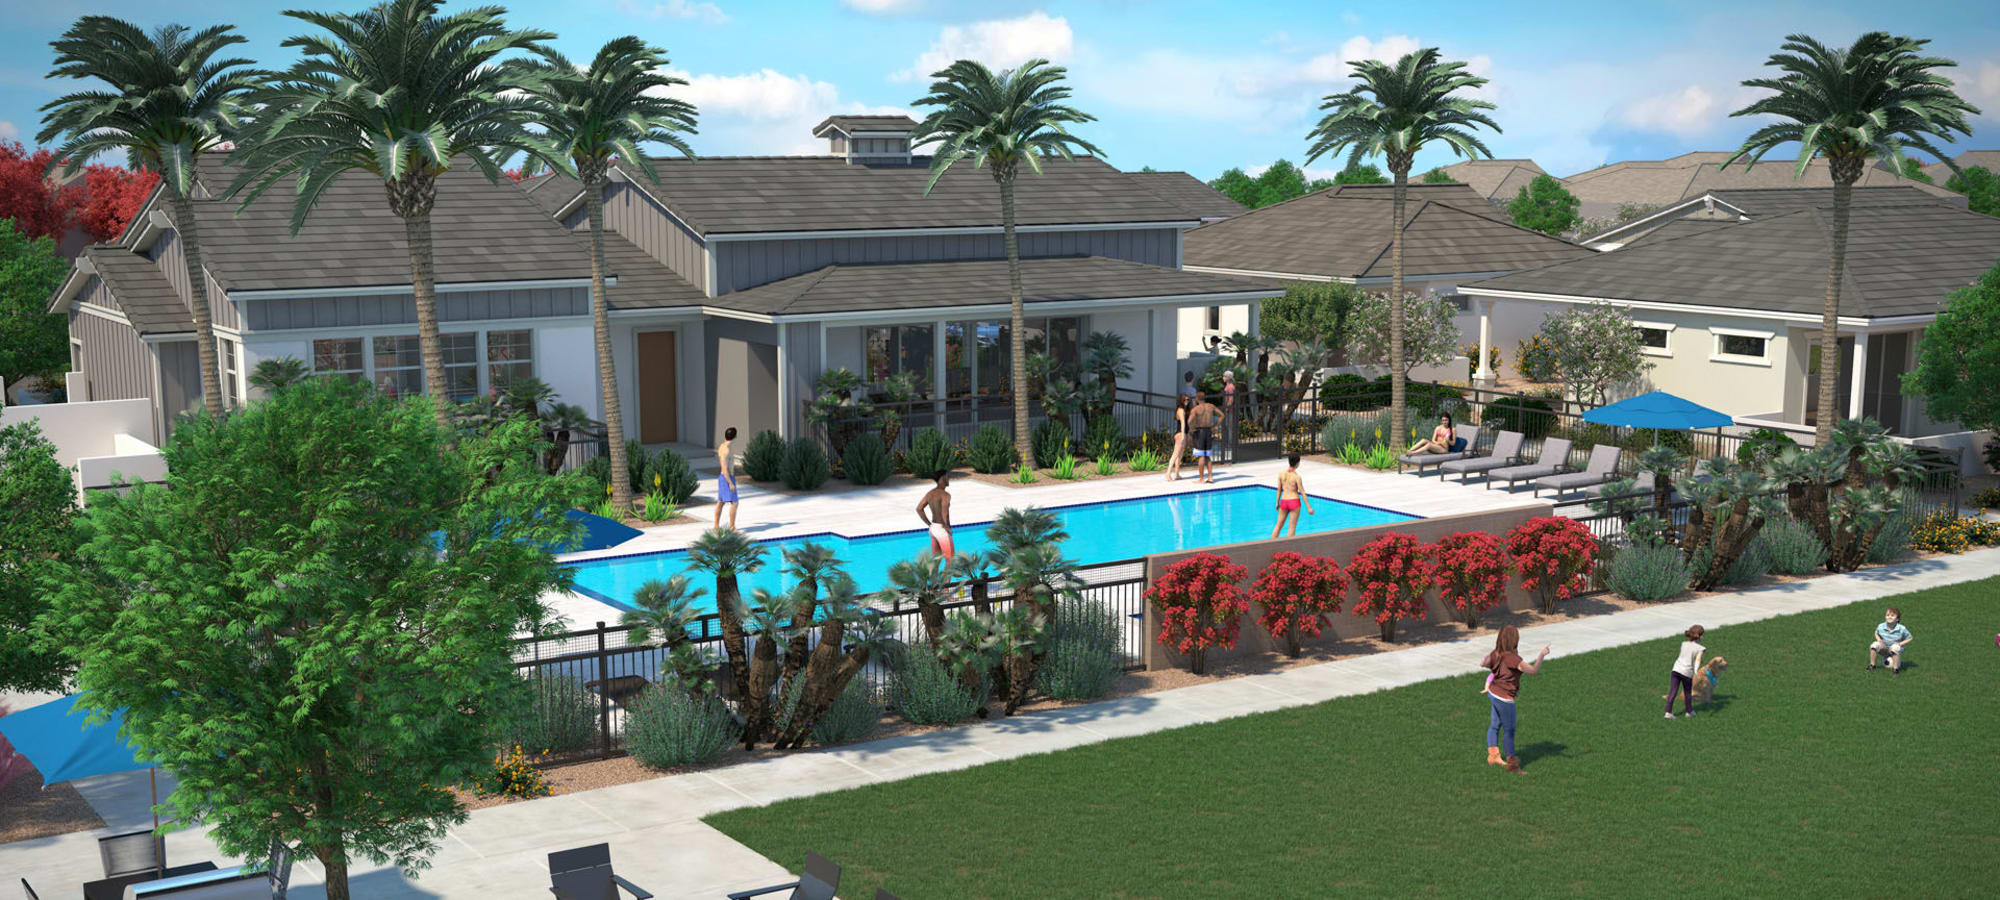 Rendering of our community play area near the swimming pool at Peralta Vista in Mesa, Arizona